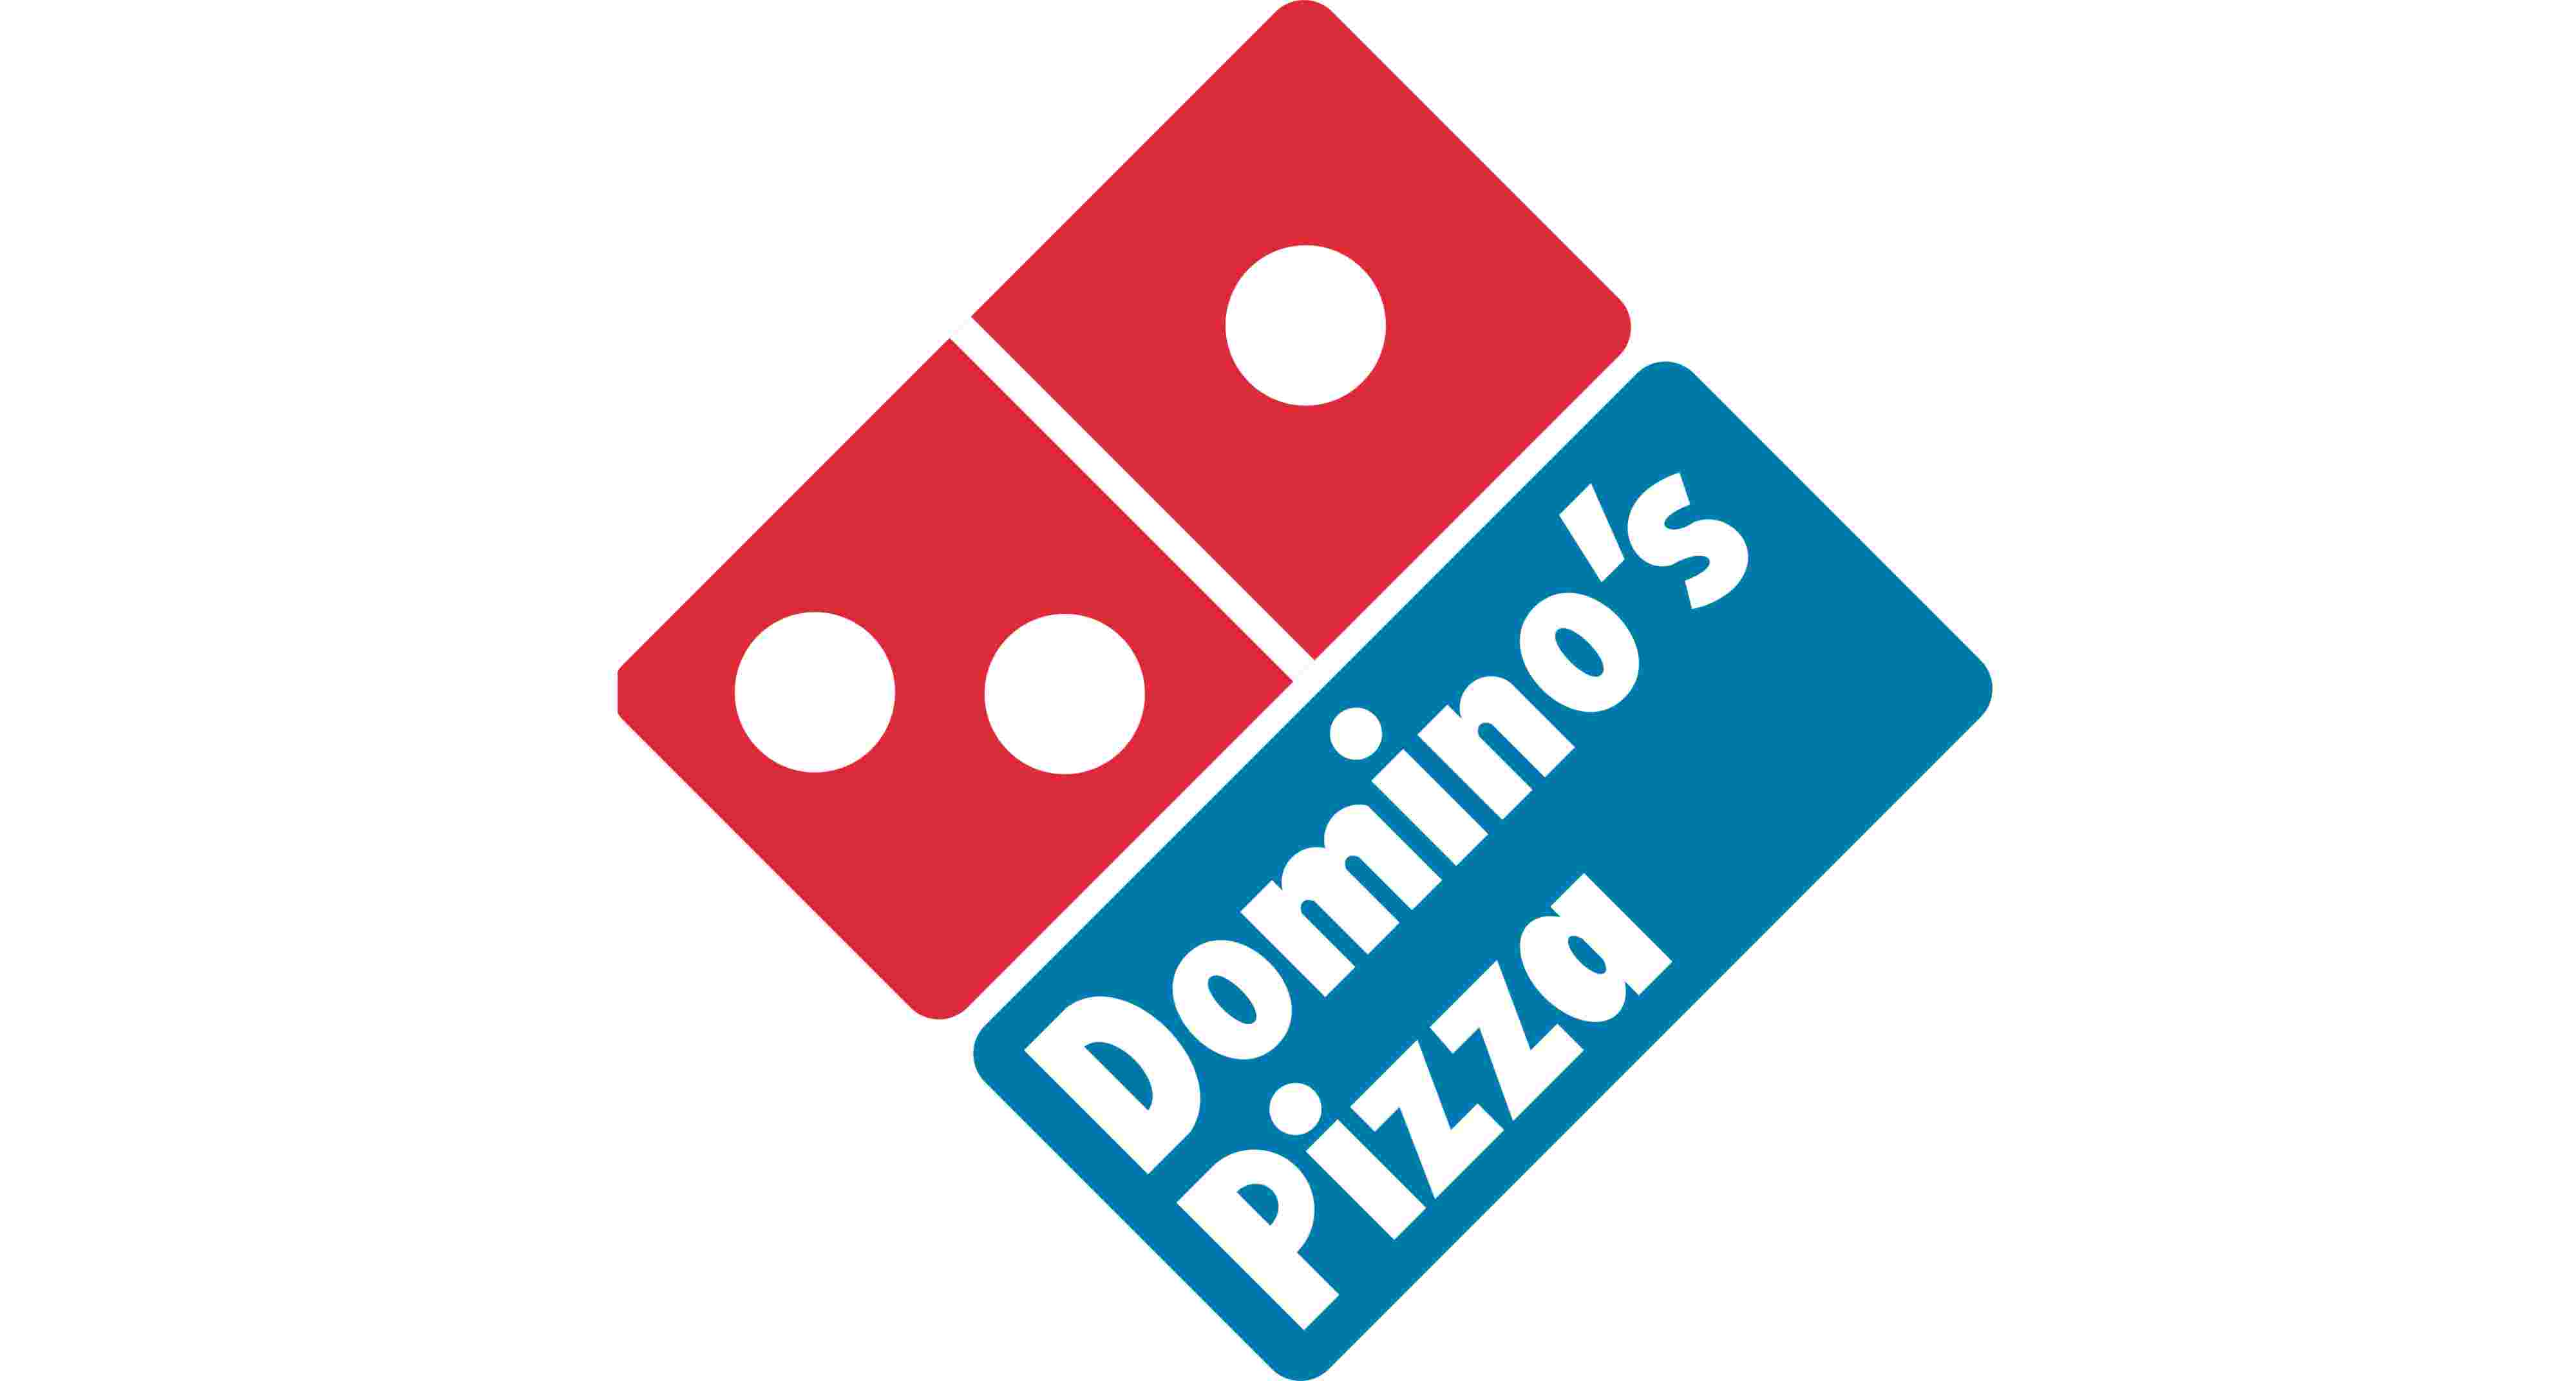 Domino's Pizza | In an interview, Tom Monaghan, the founder of Domino's Pizza explained how easily he struck upon the name of the brand. During the 60s, while he was searching for a name for his pizza venture- that's also when he had acquired just three outlets– an employee returned after delivering a pizza and said - I've got our name! Domino's! As Monaghan had only three outlets at that time he decided that he could use a Domino as the logo with three dots on it. He planned to increase the number of dots on the logo whenever they added a new store – also explaining how he'd never thought that it will go on to become a global fast food chain.